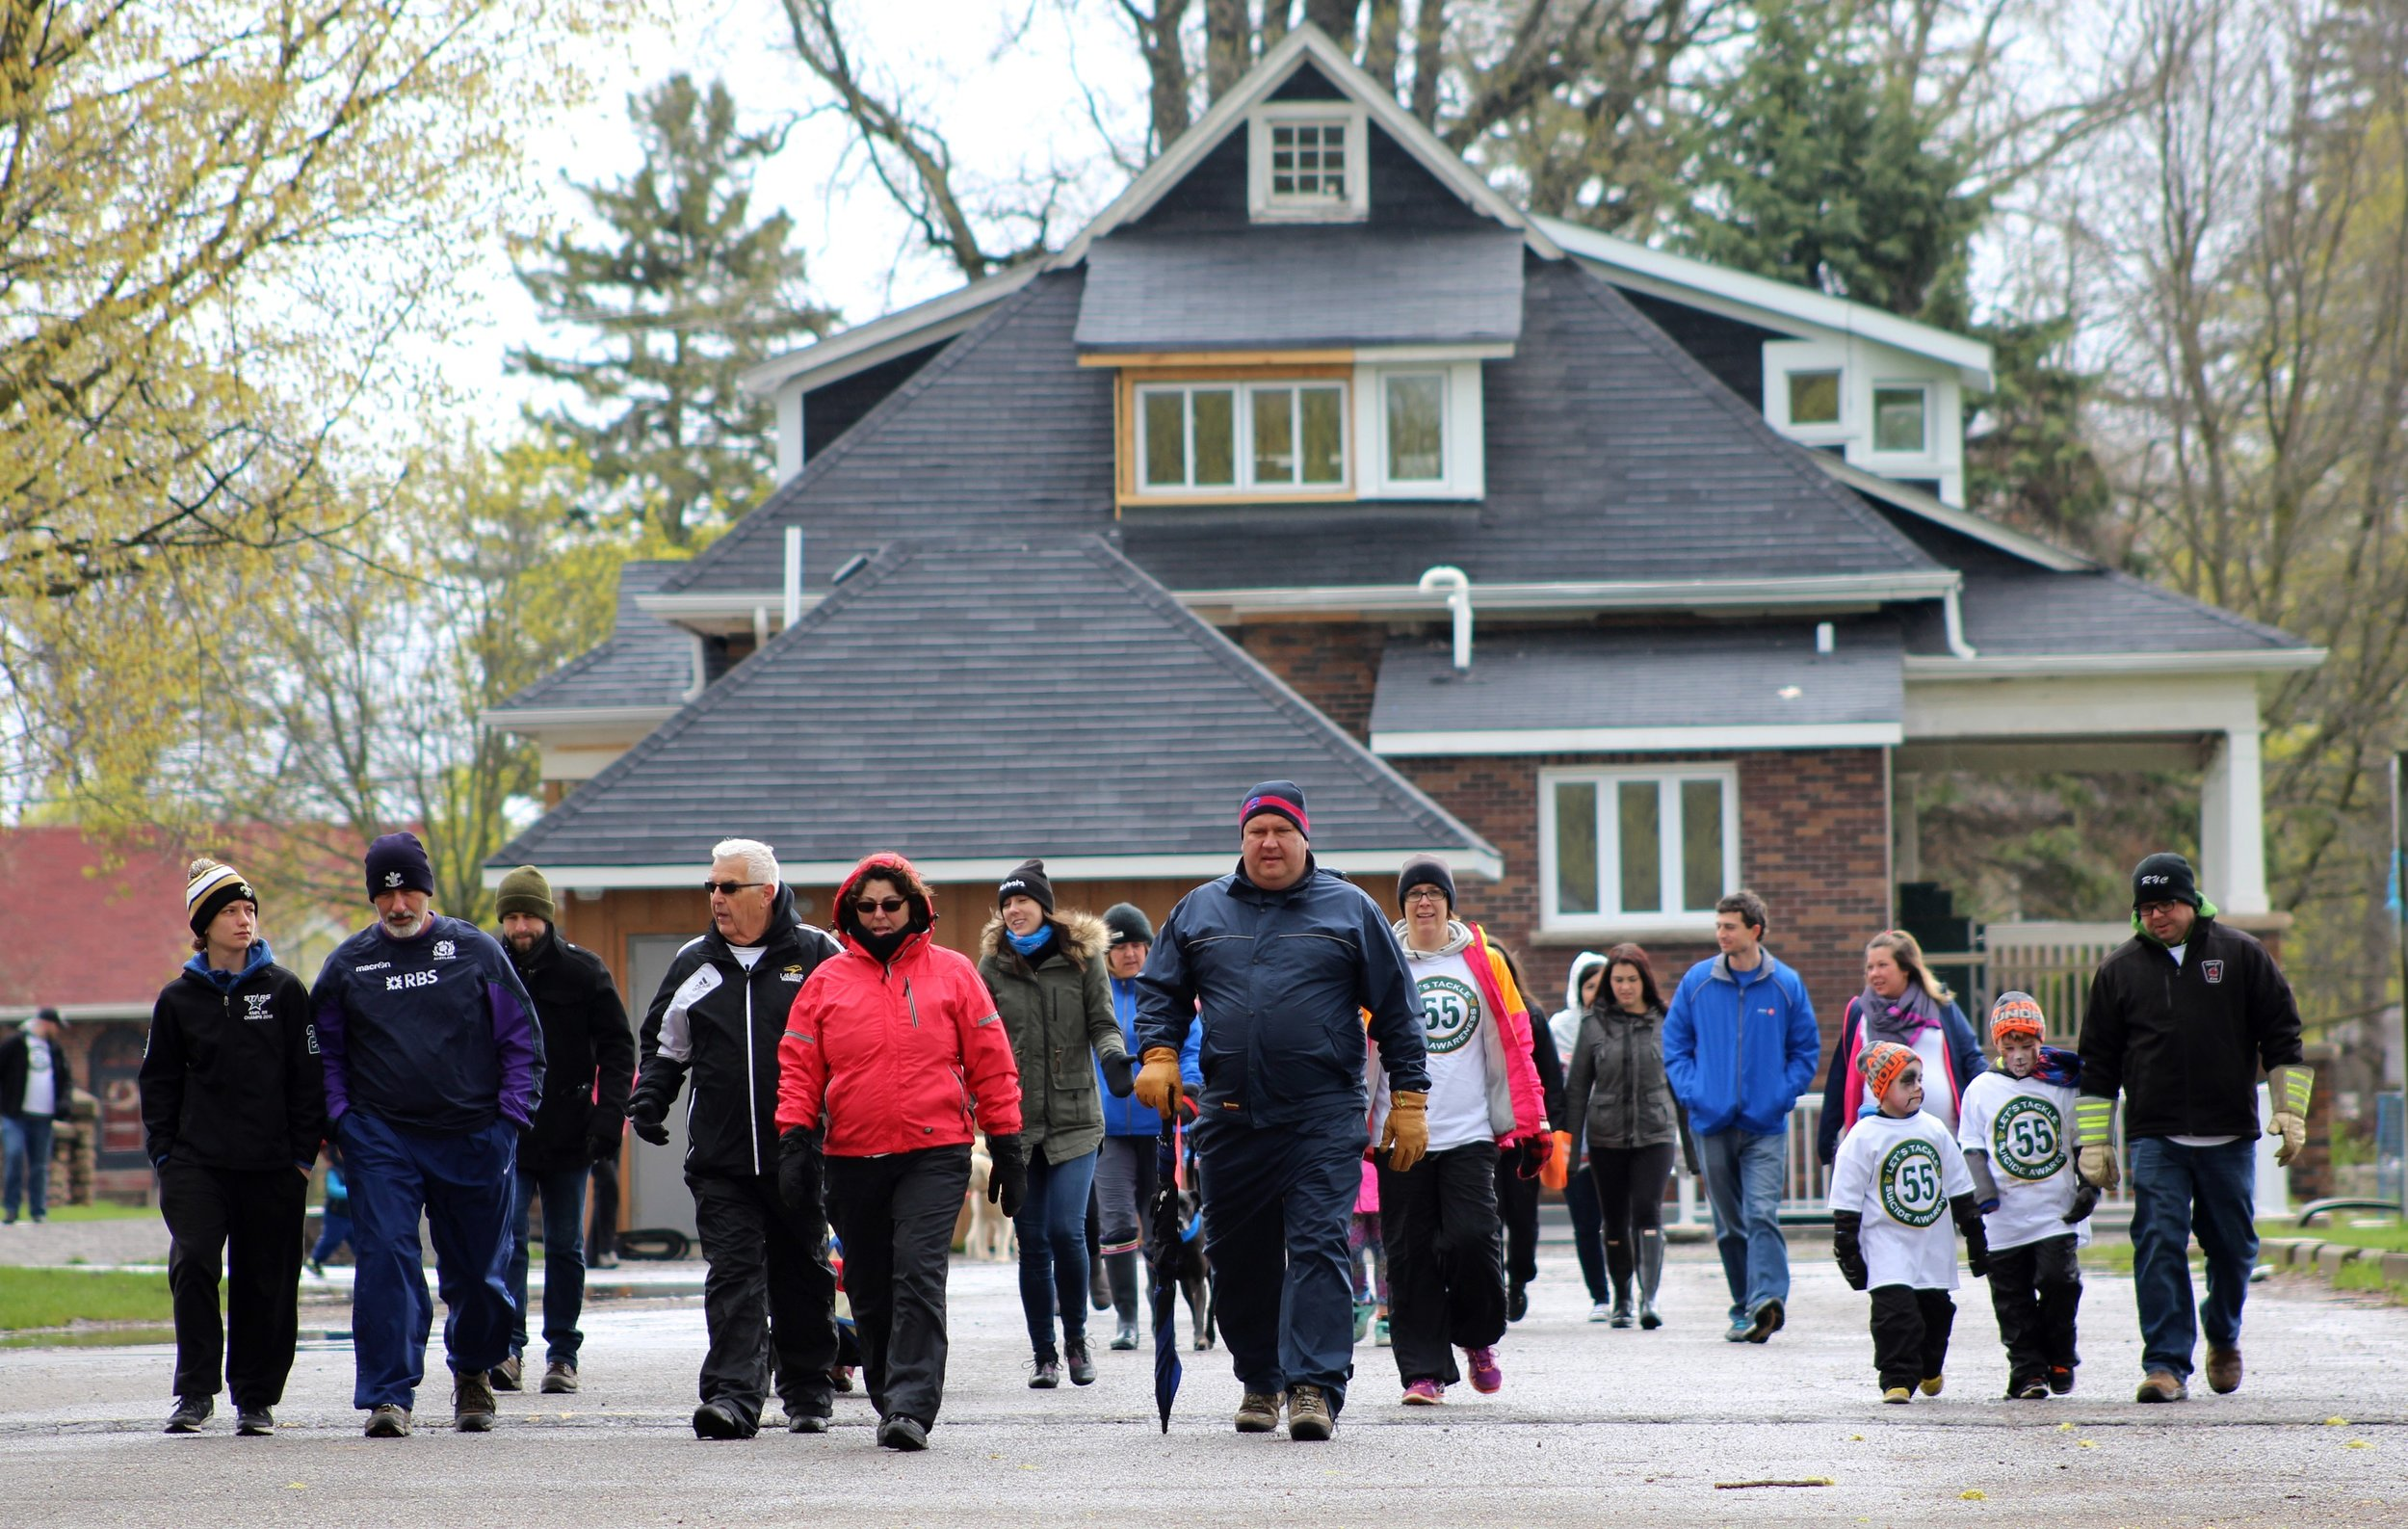 Walkers make their way around the route, braving the cold Weather. (Photo by Daniel Sky Morris)